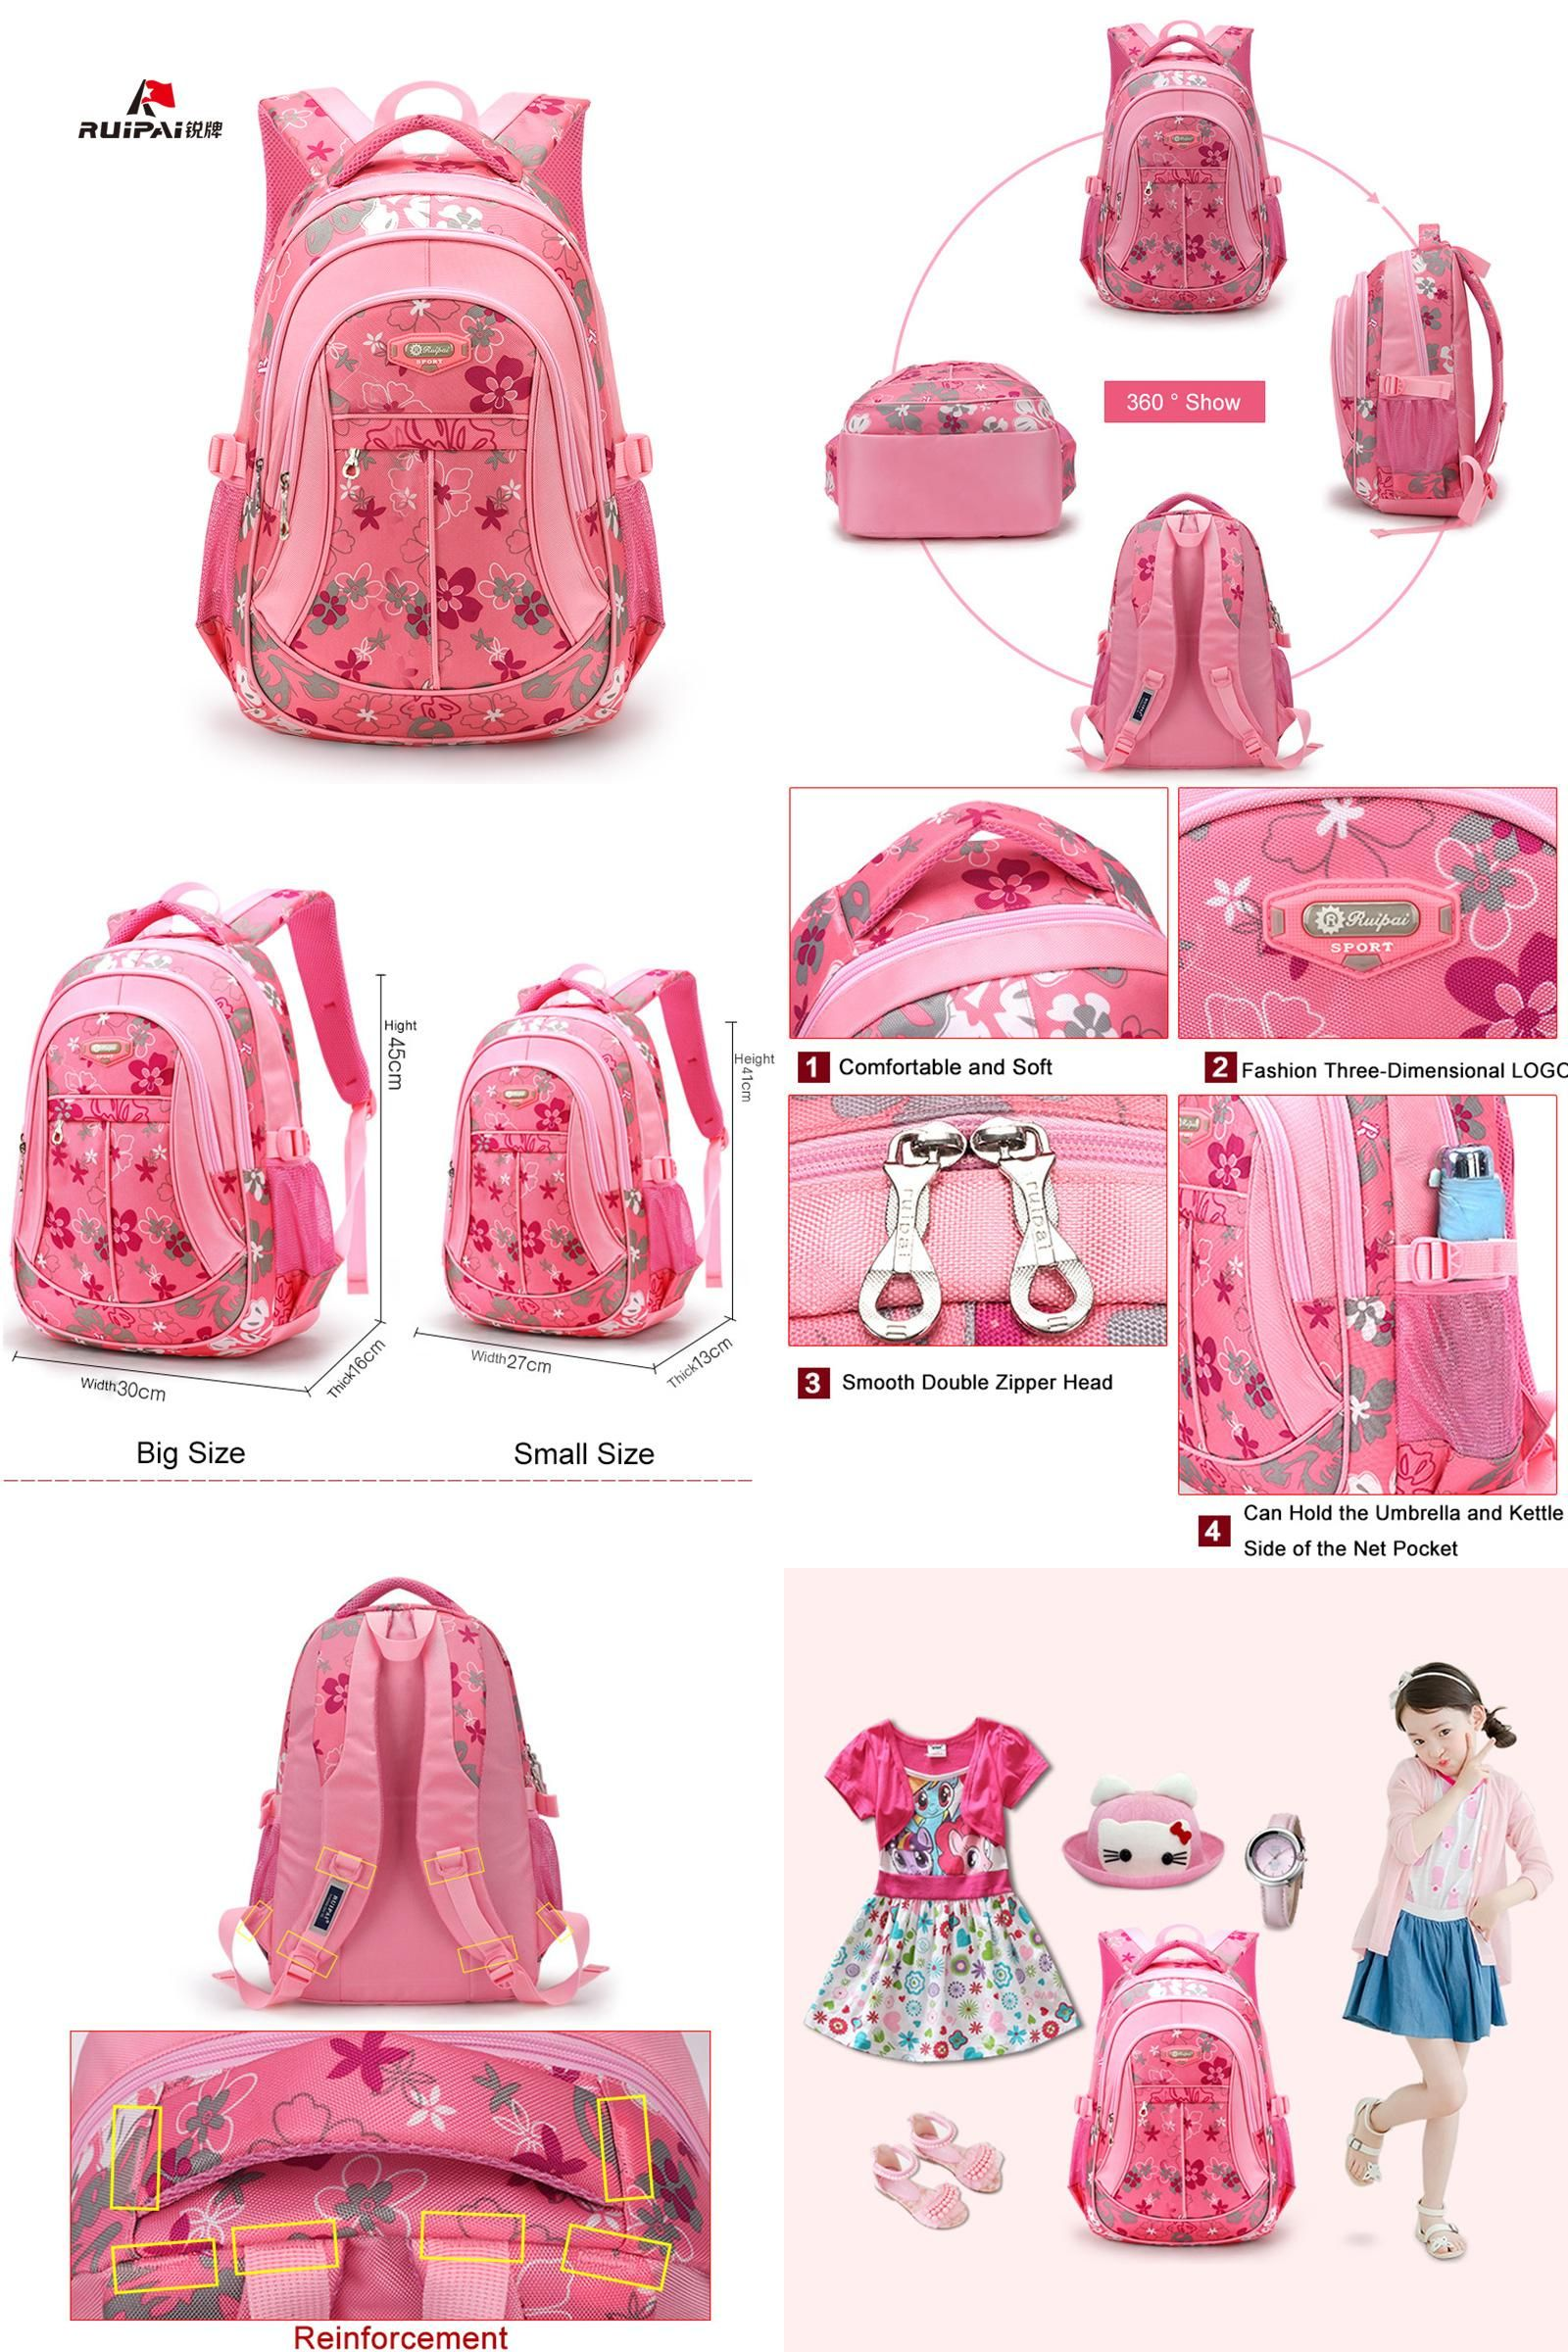 37a4a4e26a  Visit to Buy  RUIPAI School Bags Backpack Schoolbag Fashion Kids Lovely  Backpacks For Children